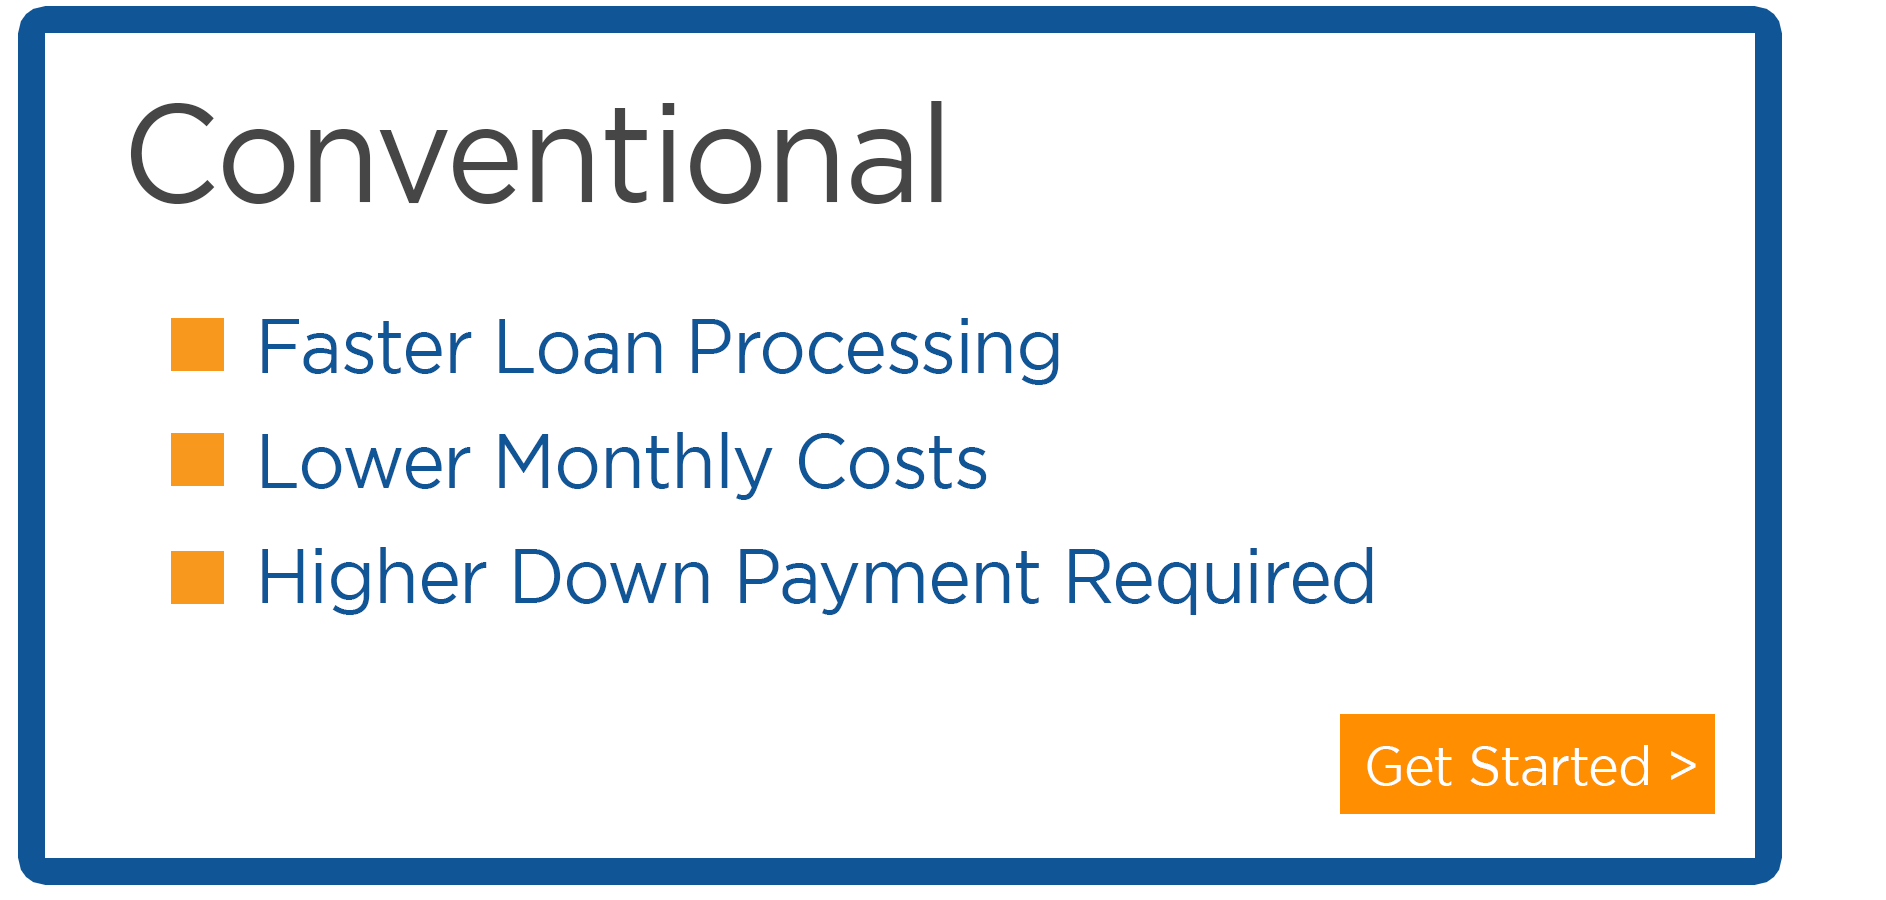 Pay as little as zero down payment at Central Sunbelt with a USDA loan